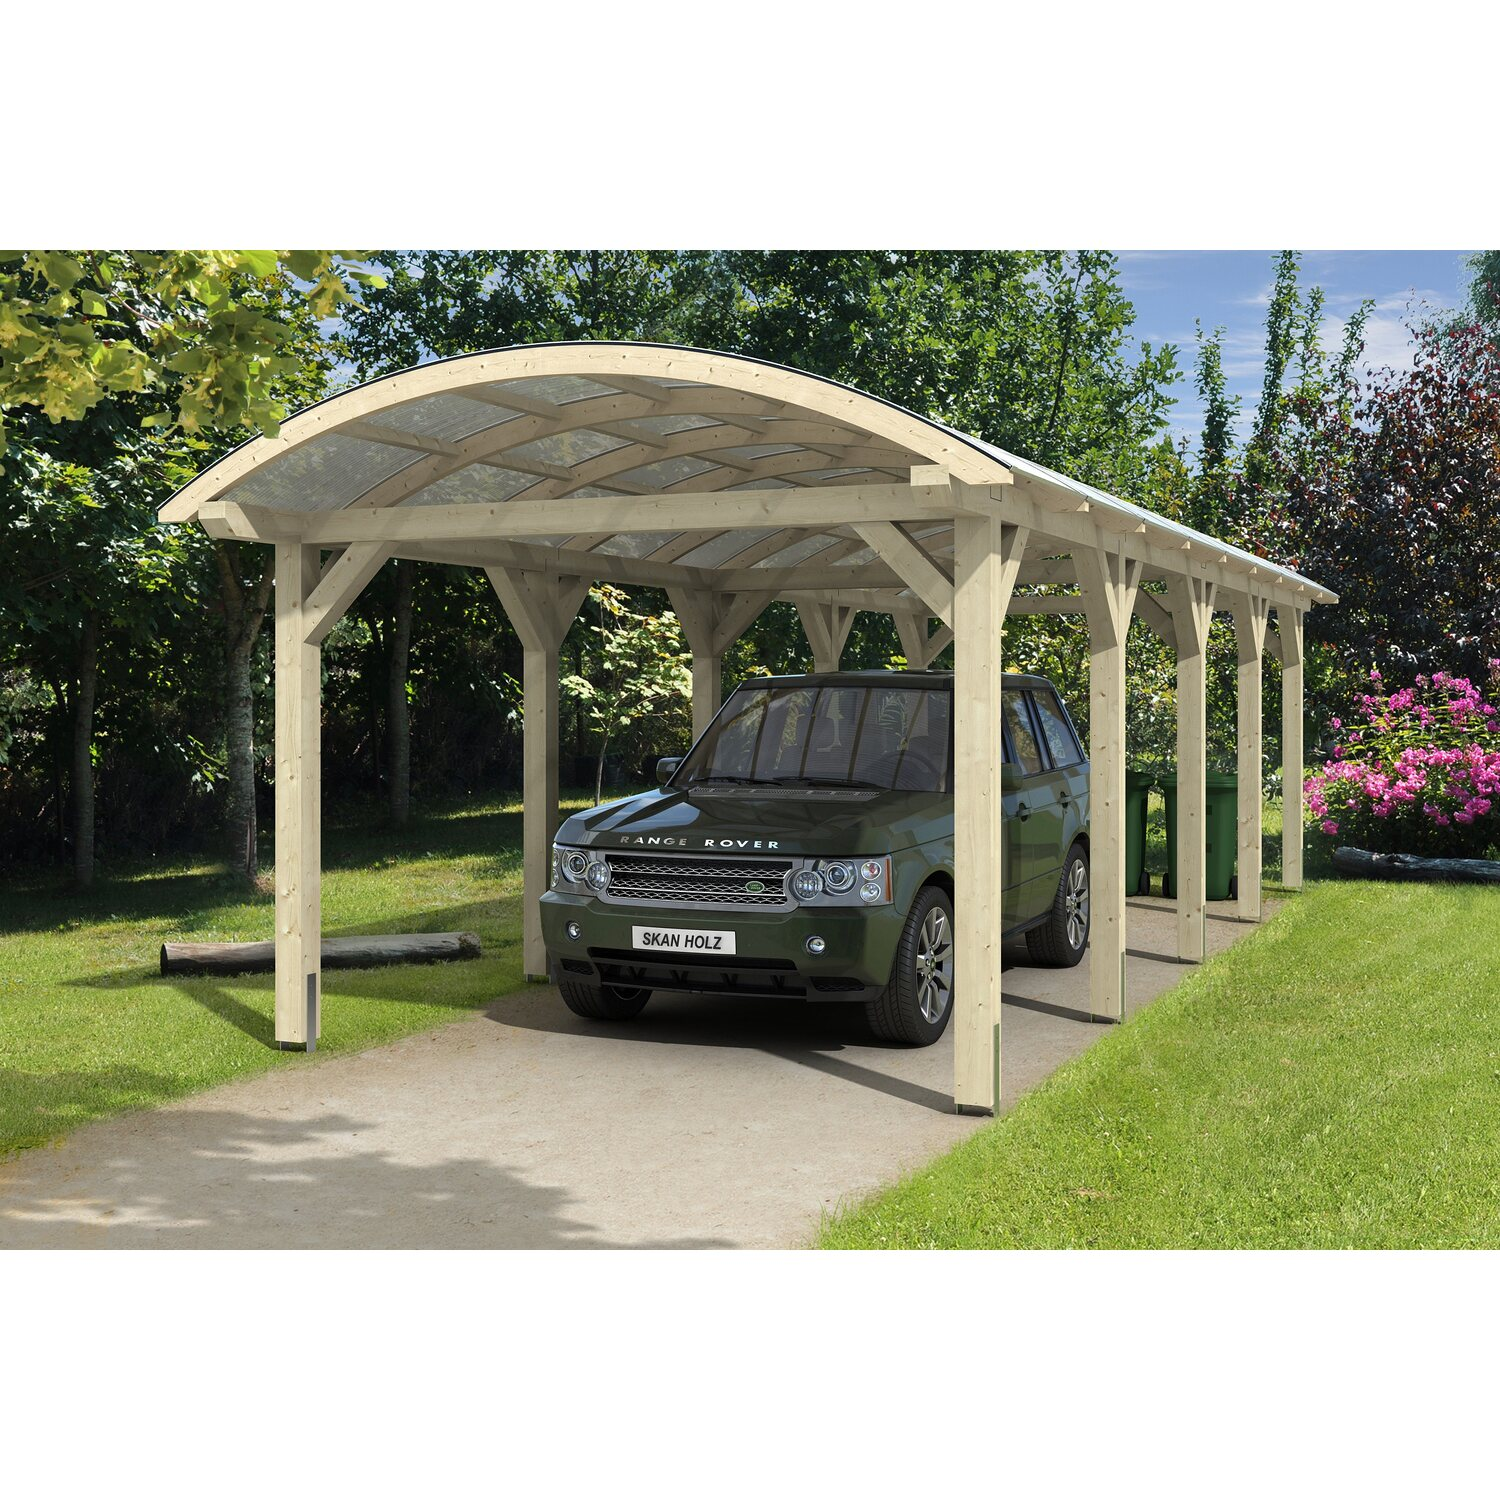 skan holz bogendach carport franken 376 cm x 969 cm kaufen bei obi. Black Bedroom Furniture Sets. Home Design Ideas